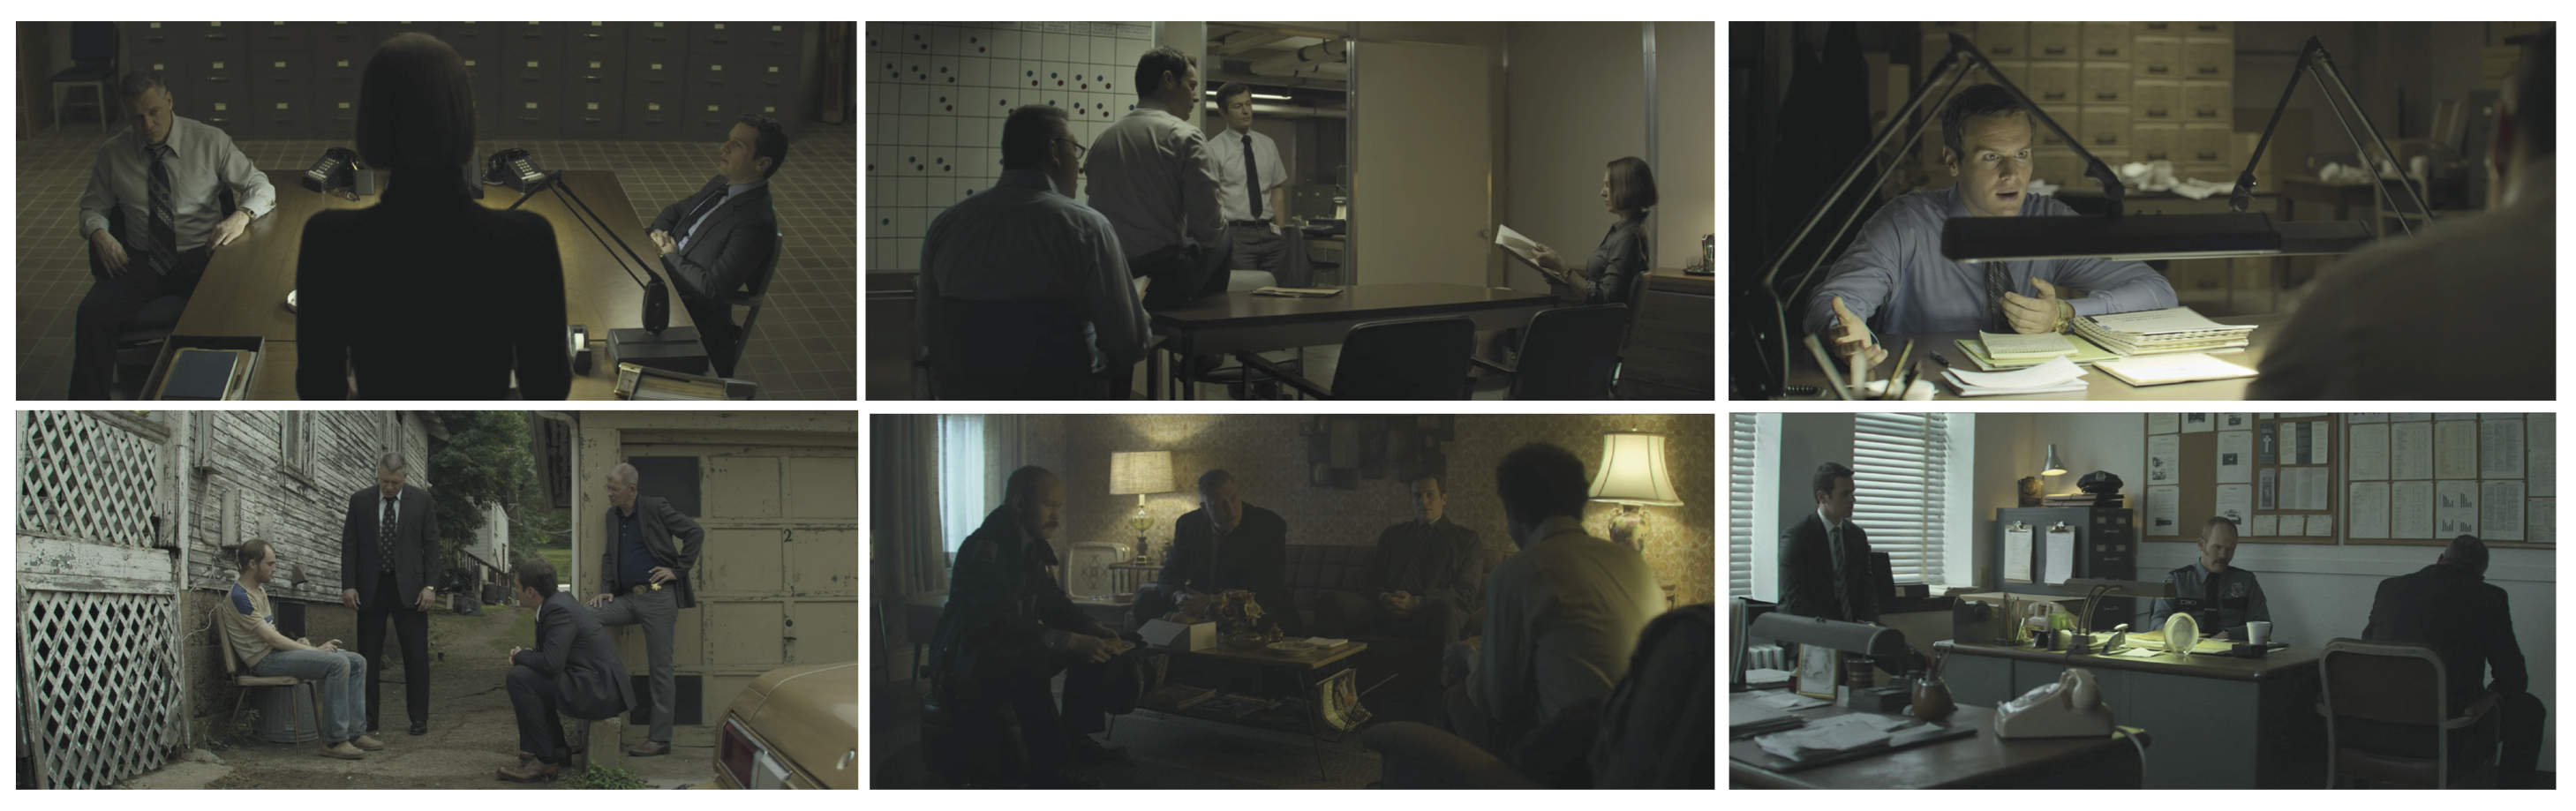 DP Erik Messerschmidt On Shooting Netflixs Mindhunter With A - A fascinating breakdown of the visual effects in netflixs mindhunter